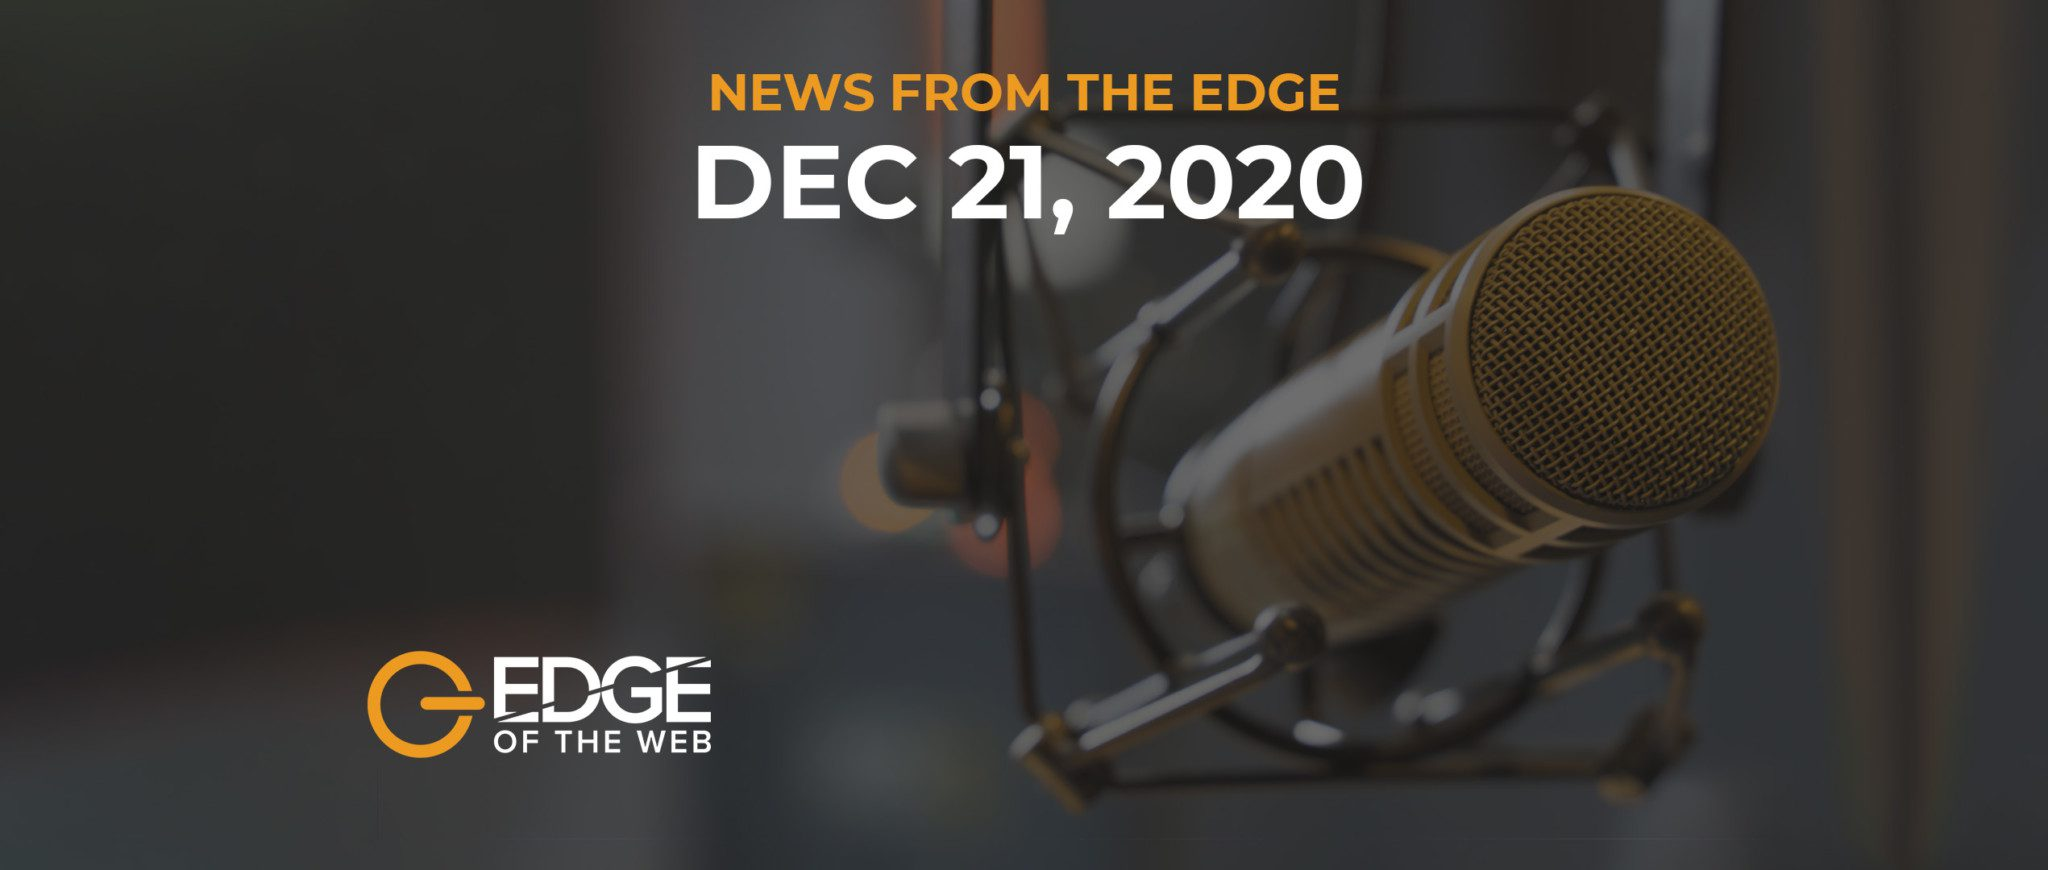 380 | News from the EDGE :  Week of December 21, 2020